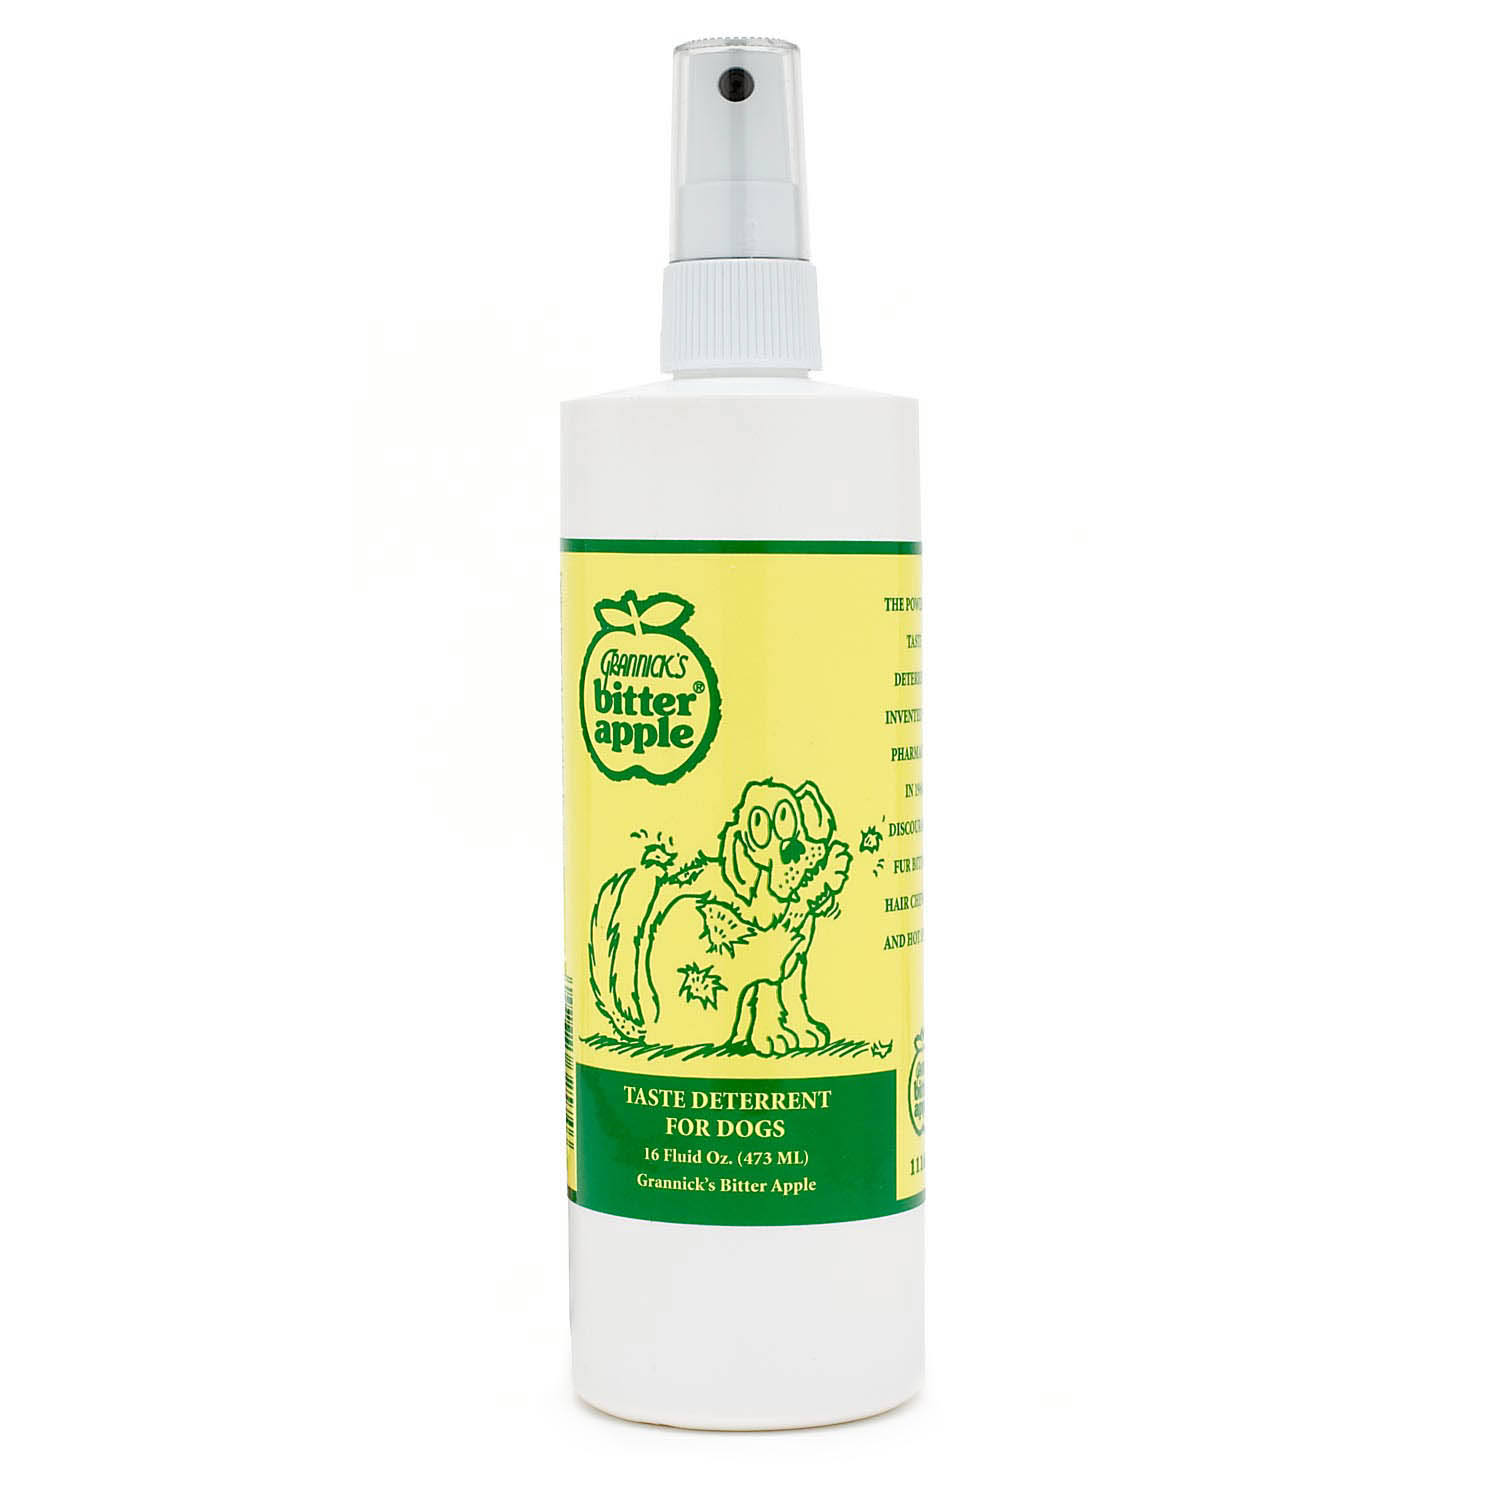 Grannick's Bitter Apple Taste Deterrent and Training Aid for Dogs - 16oz Spray Bottle